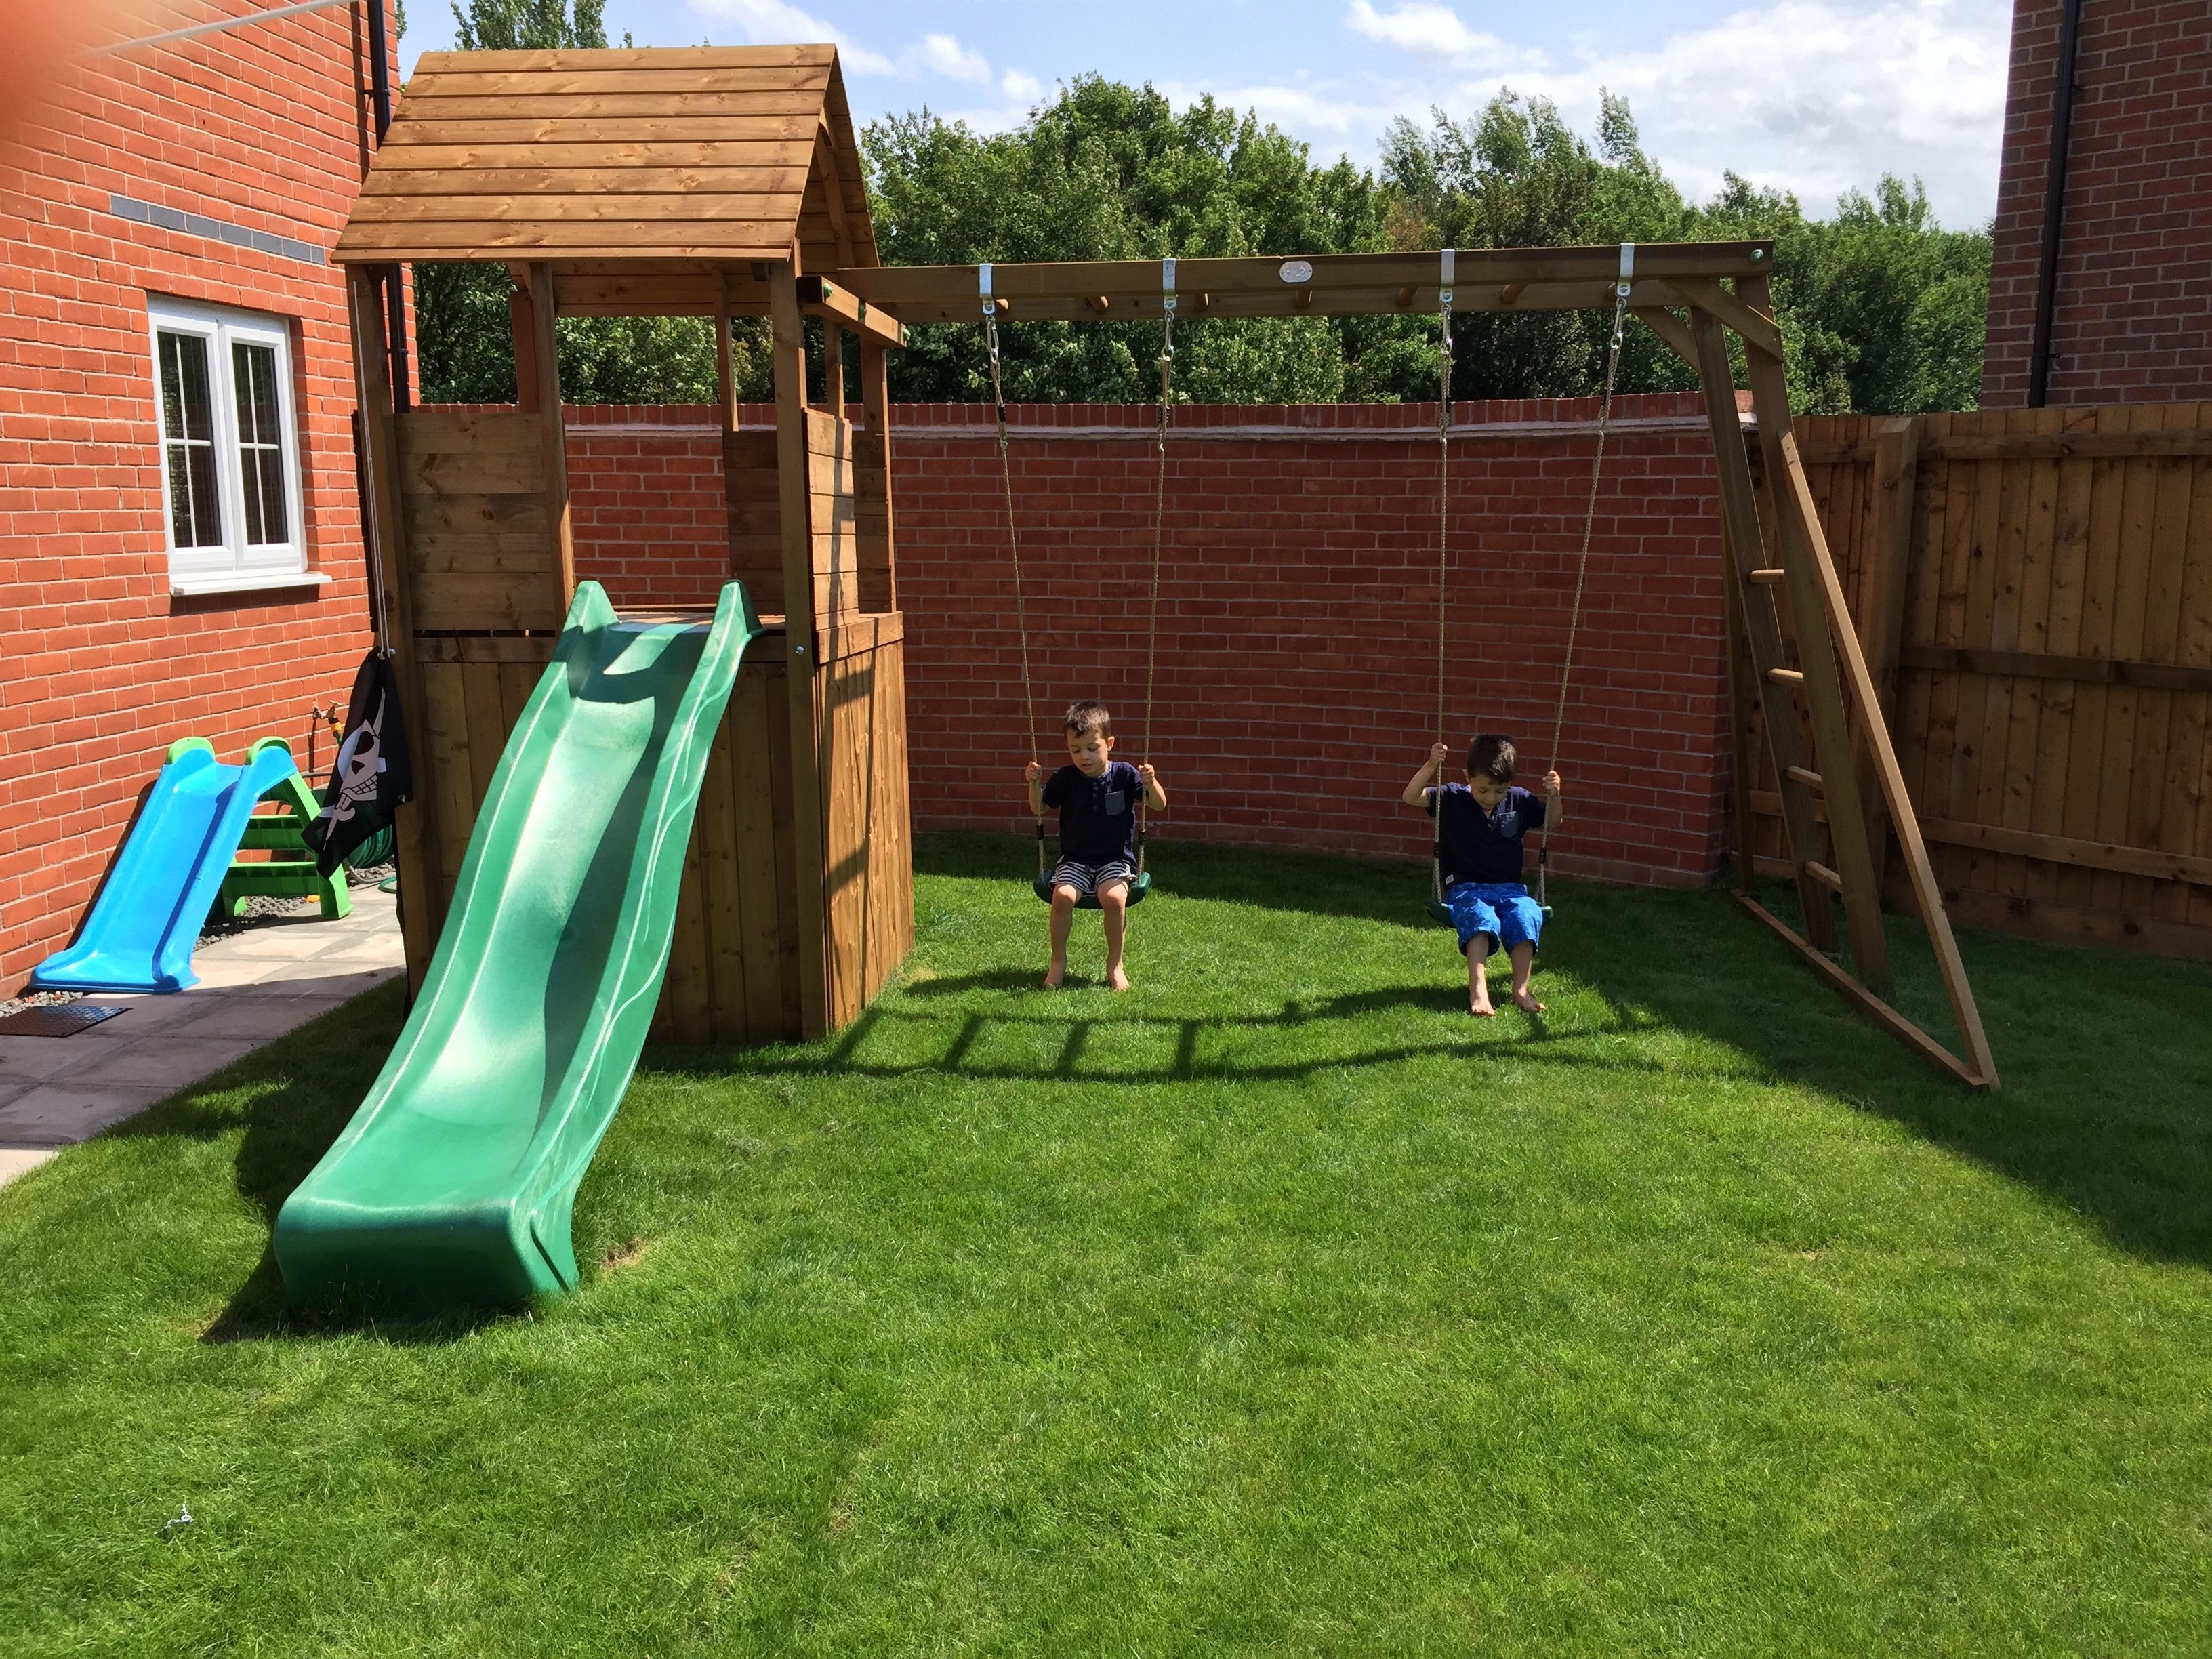 Jazzmin Alcock s children seem very happy playing in their garden on